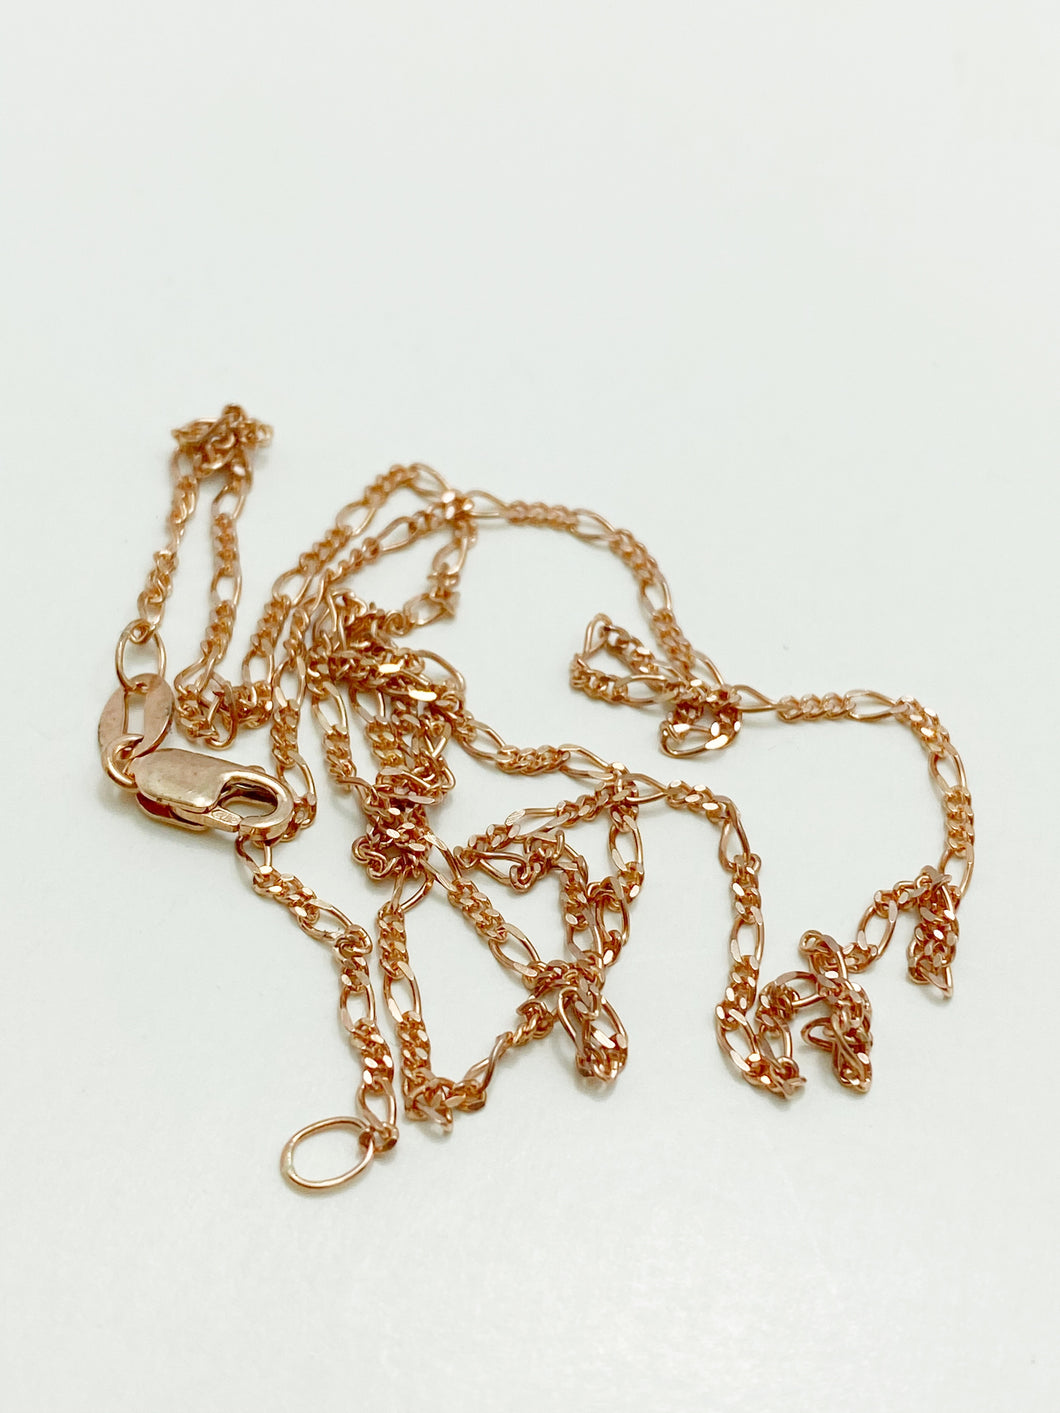 9ct Pink Gold Figaro 3:1 Chain, 40cm, 45cm, 50cm or 55cm Long